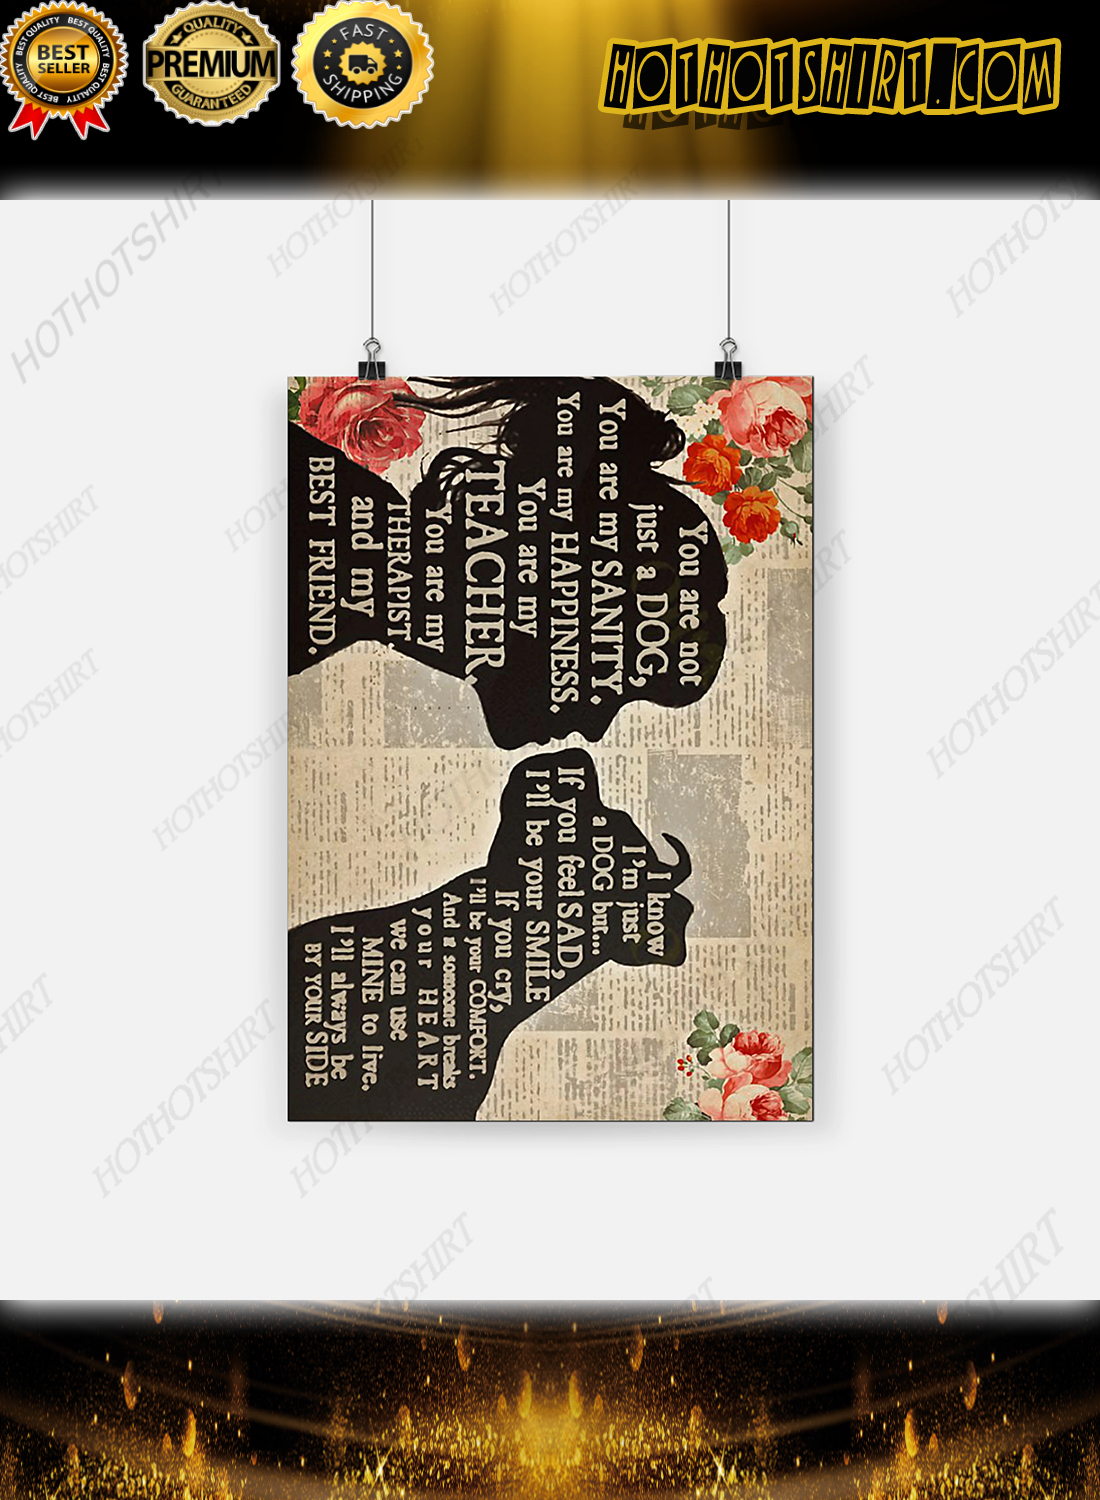 Pitbull girl therapist best friend poster wall art 3